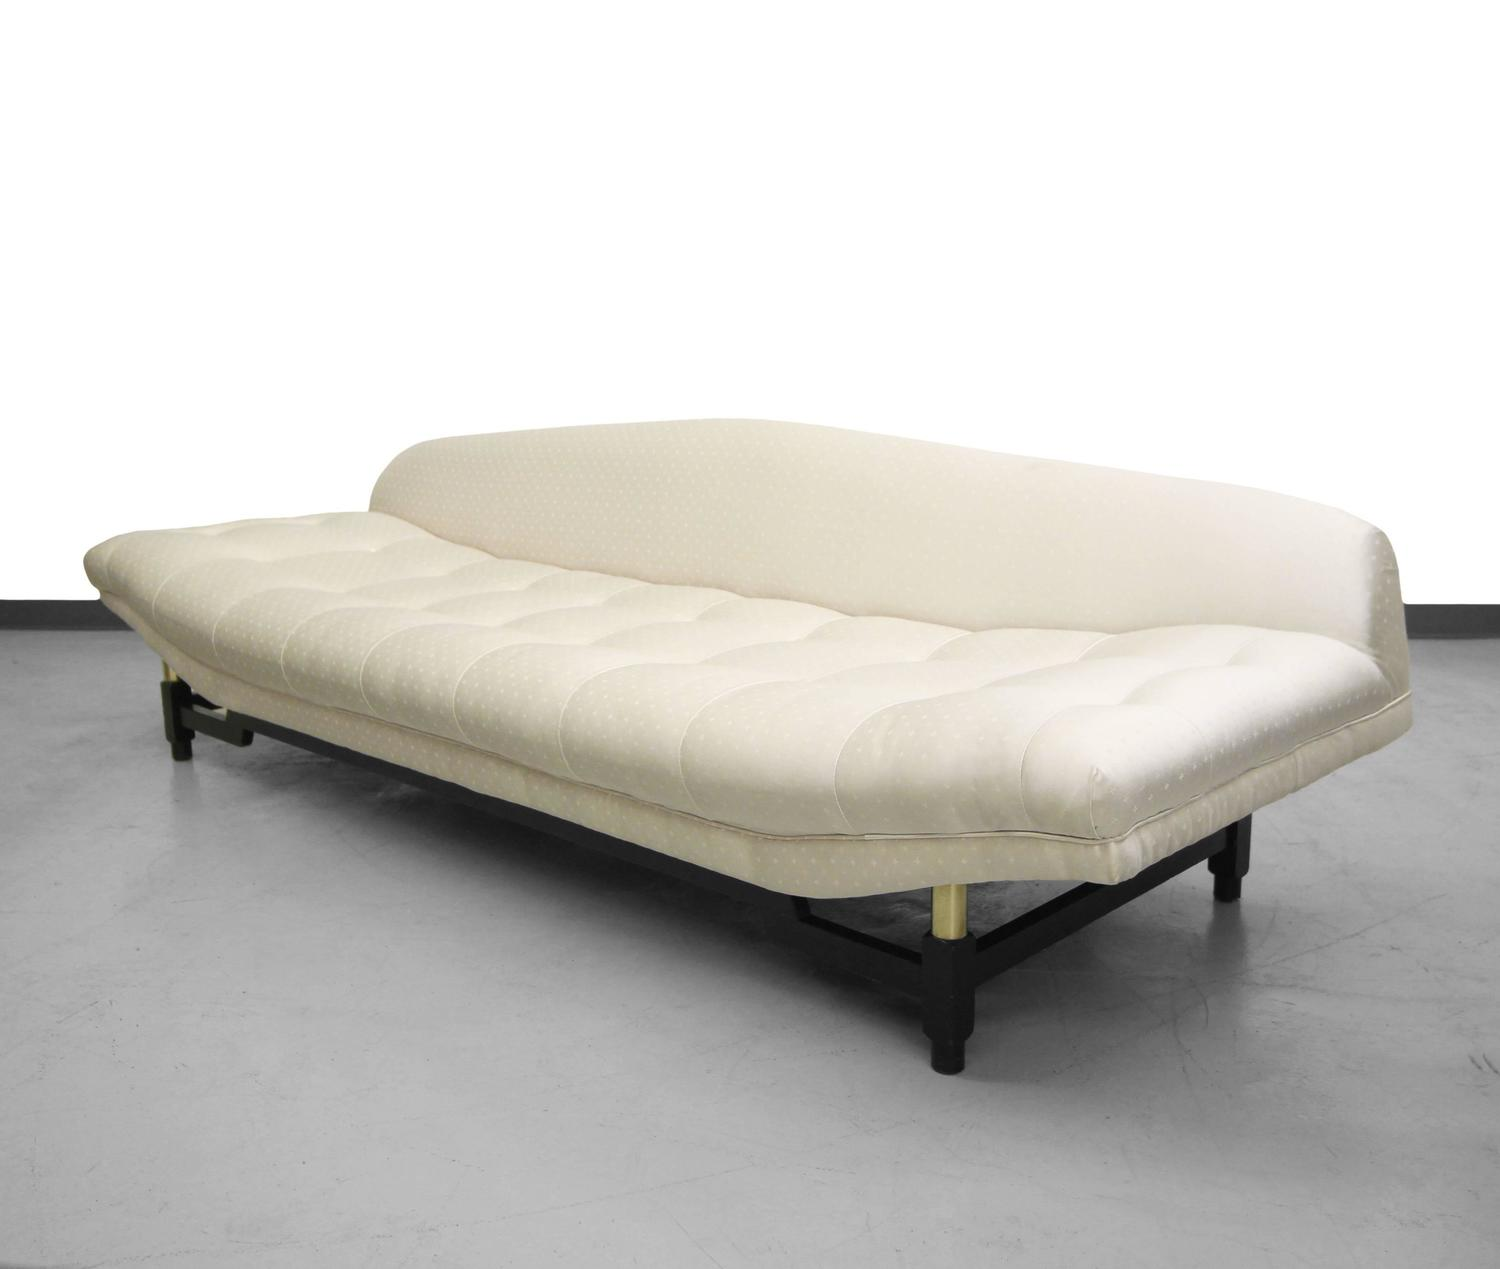 Mid Century Gondola Sofa: Mid-Century Gondola Sofa With Brass Details For Sale At